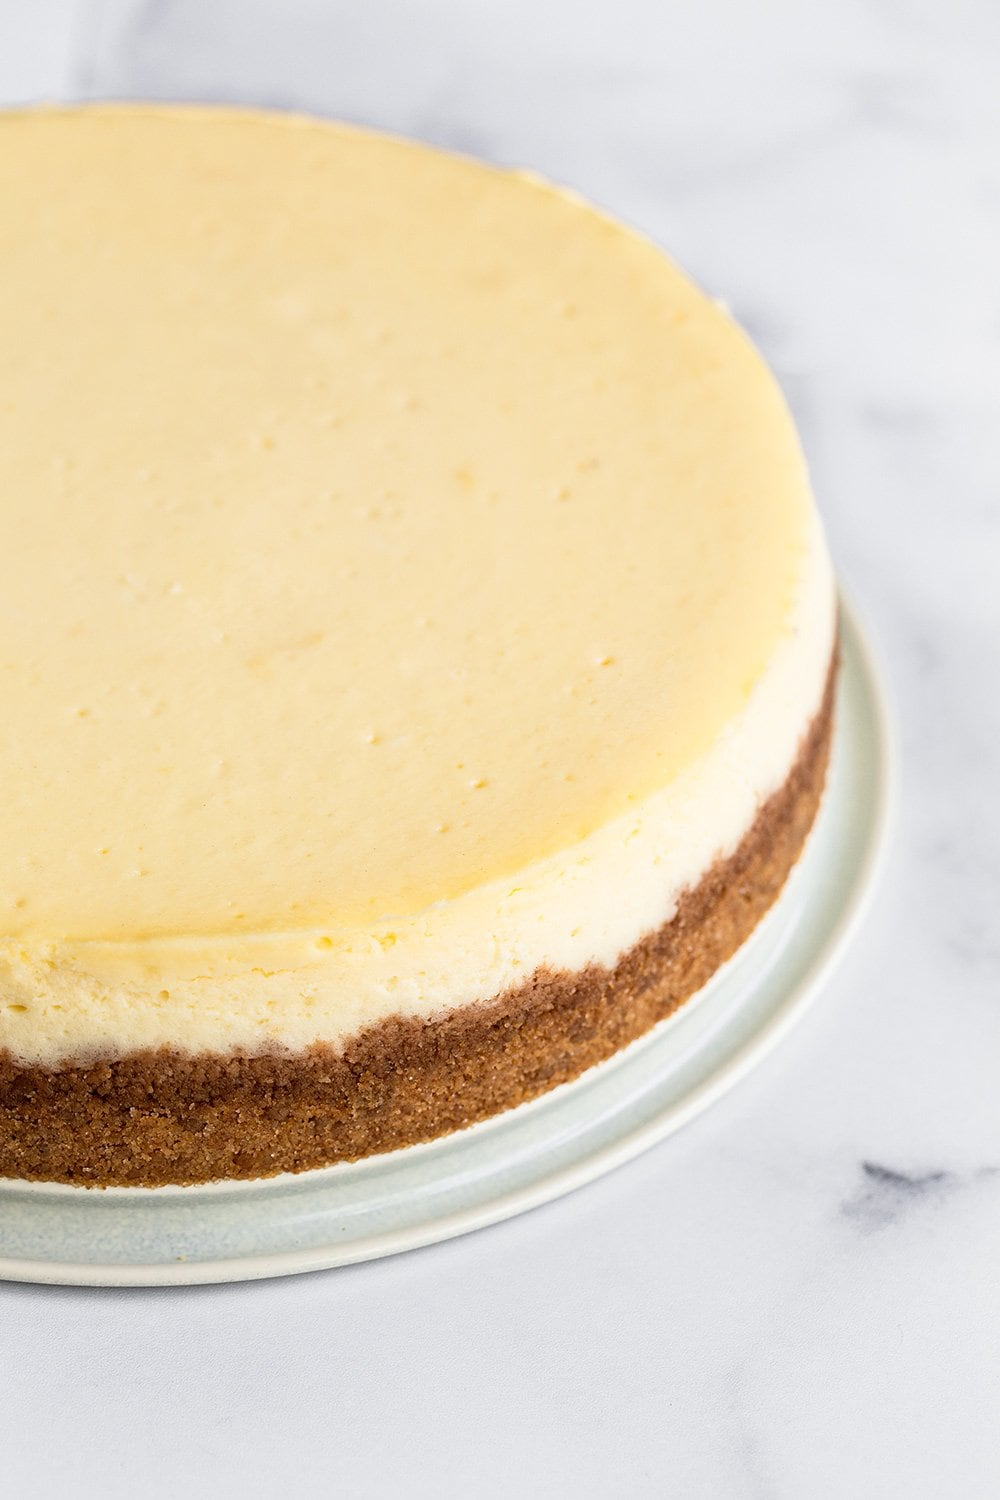 perfectly smooth and creamy cheesecake with no cracks and a graham cracker crust